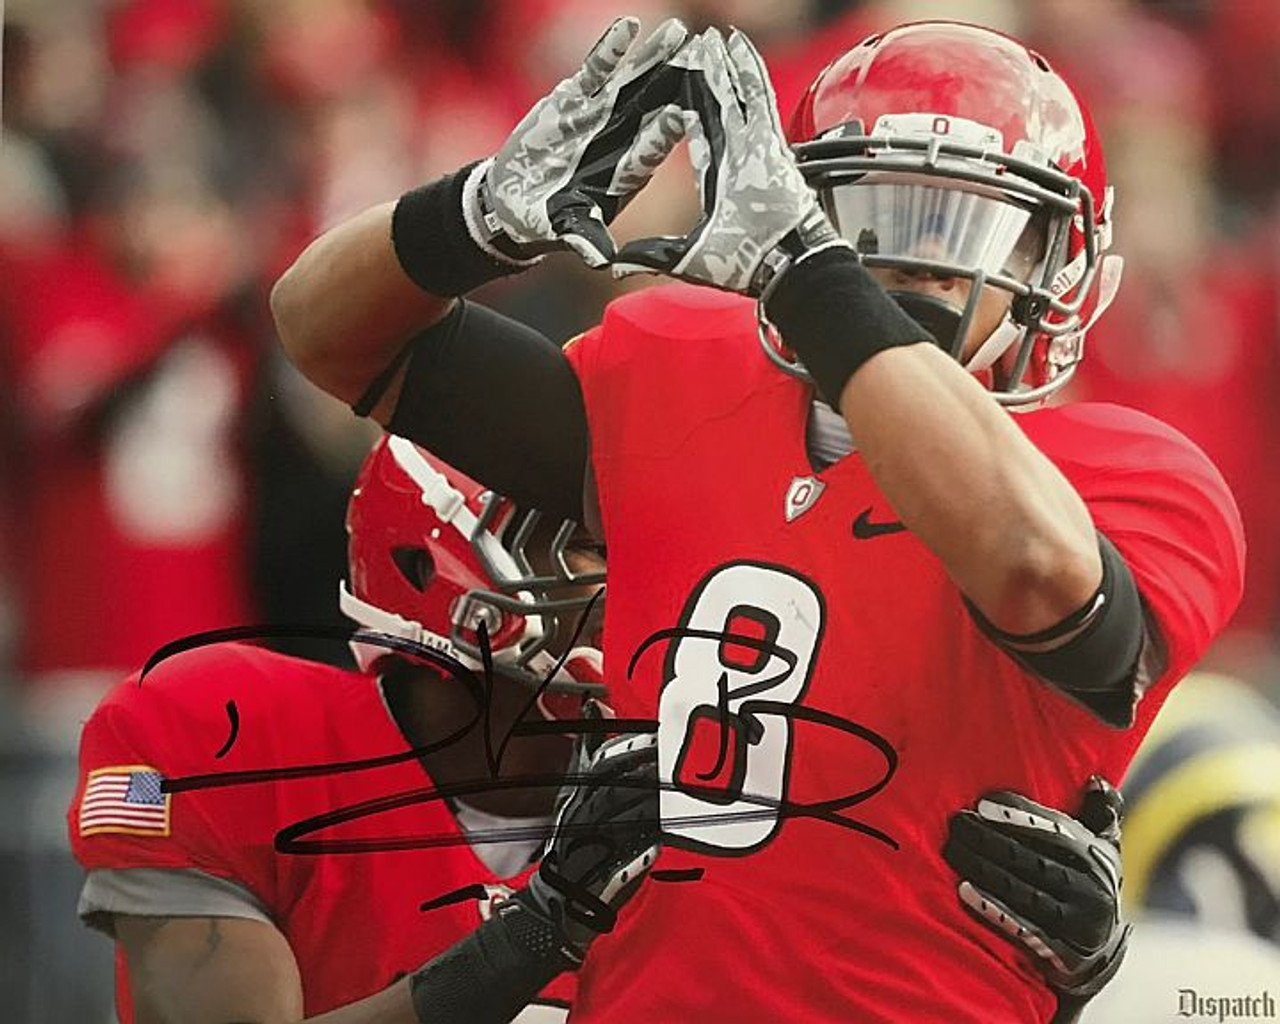 DeVier Posey OSU 16-3 16x20 Autographed Photo - Certified Authentic